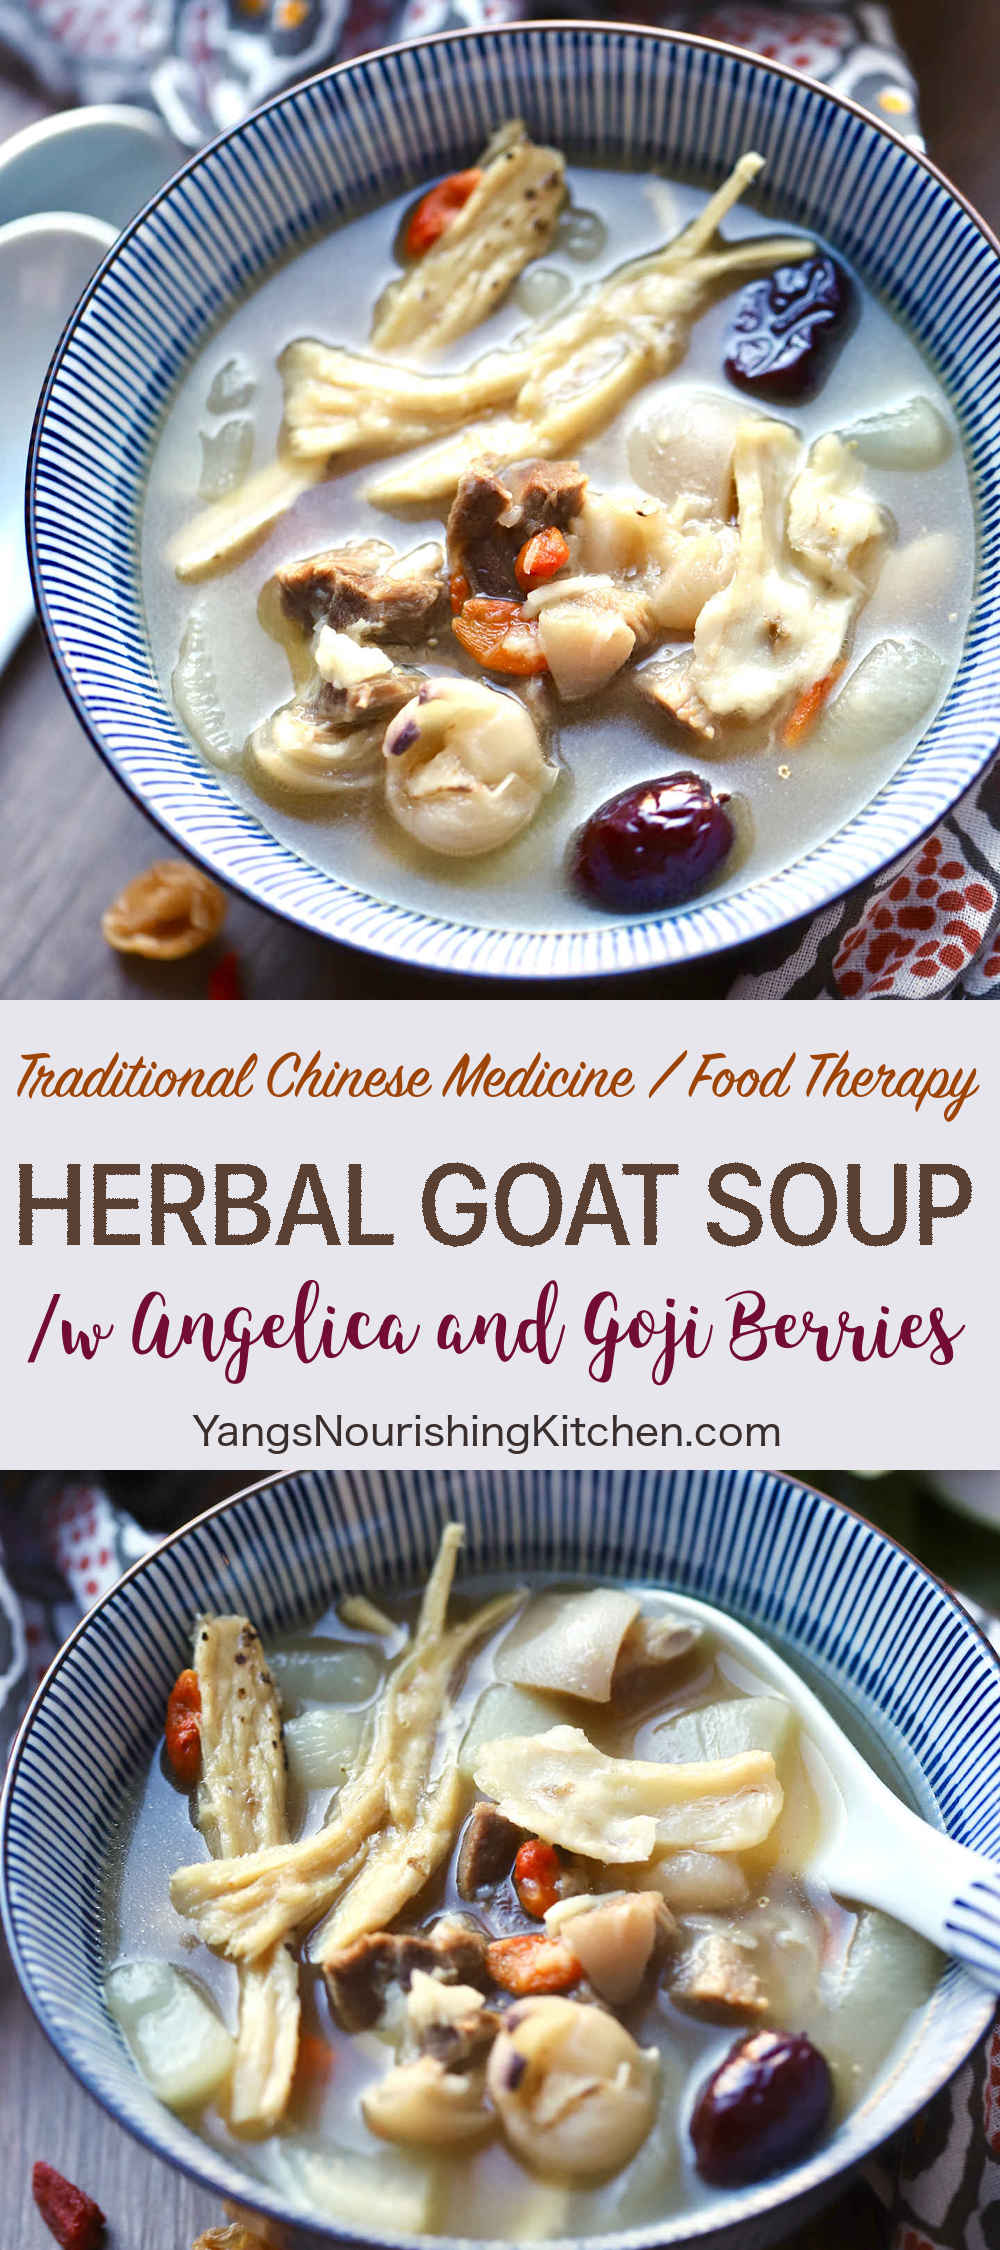 Herbal Goat Soup /w Angelica and Goji Berries